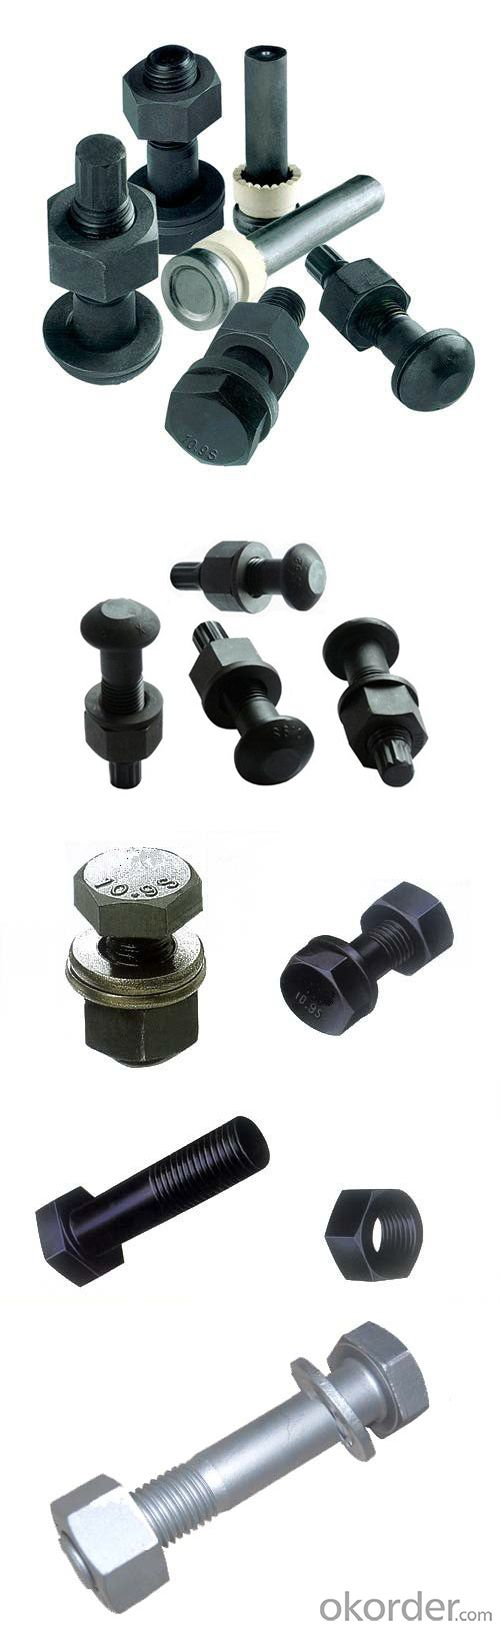 High Strength Heavy Hex Bolt T. C Bolt (Tension Control Bolt) for Steel Structure